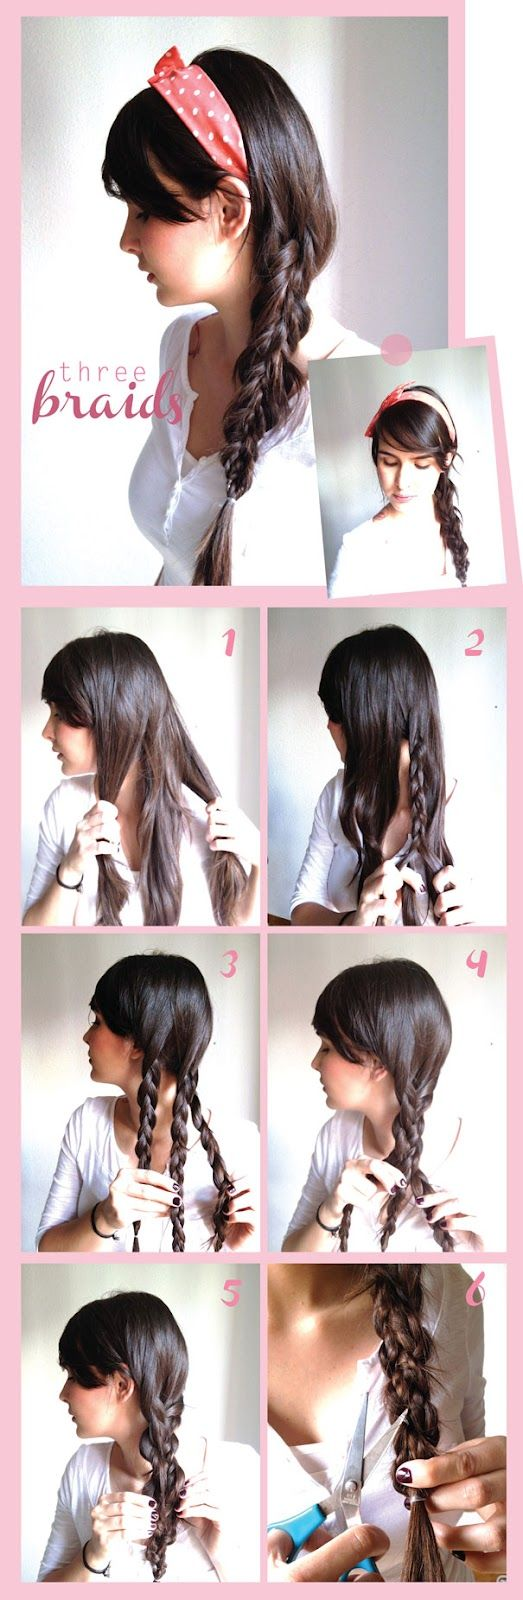 Pin by nicole clennett on beauty pinterest third hair style and